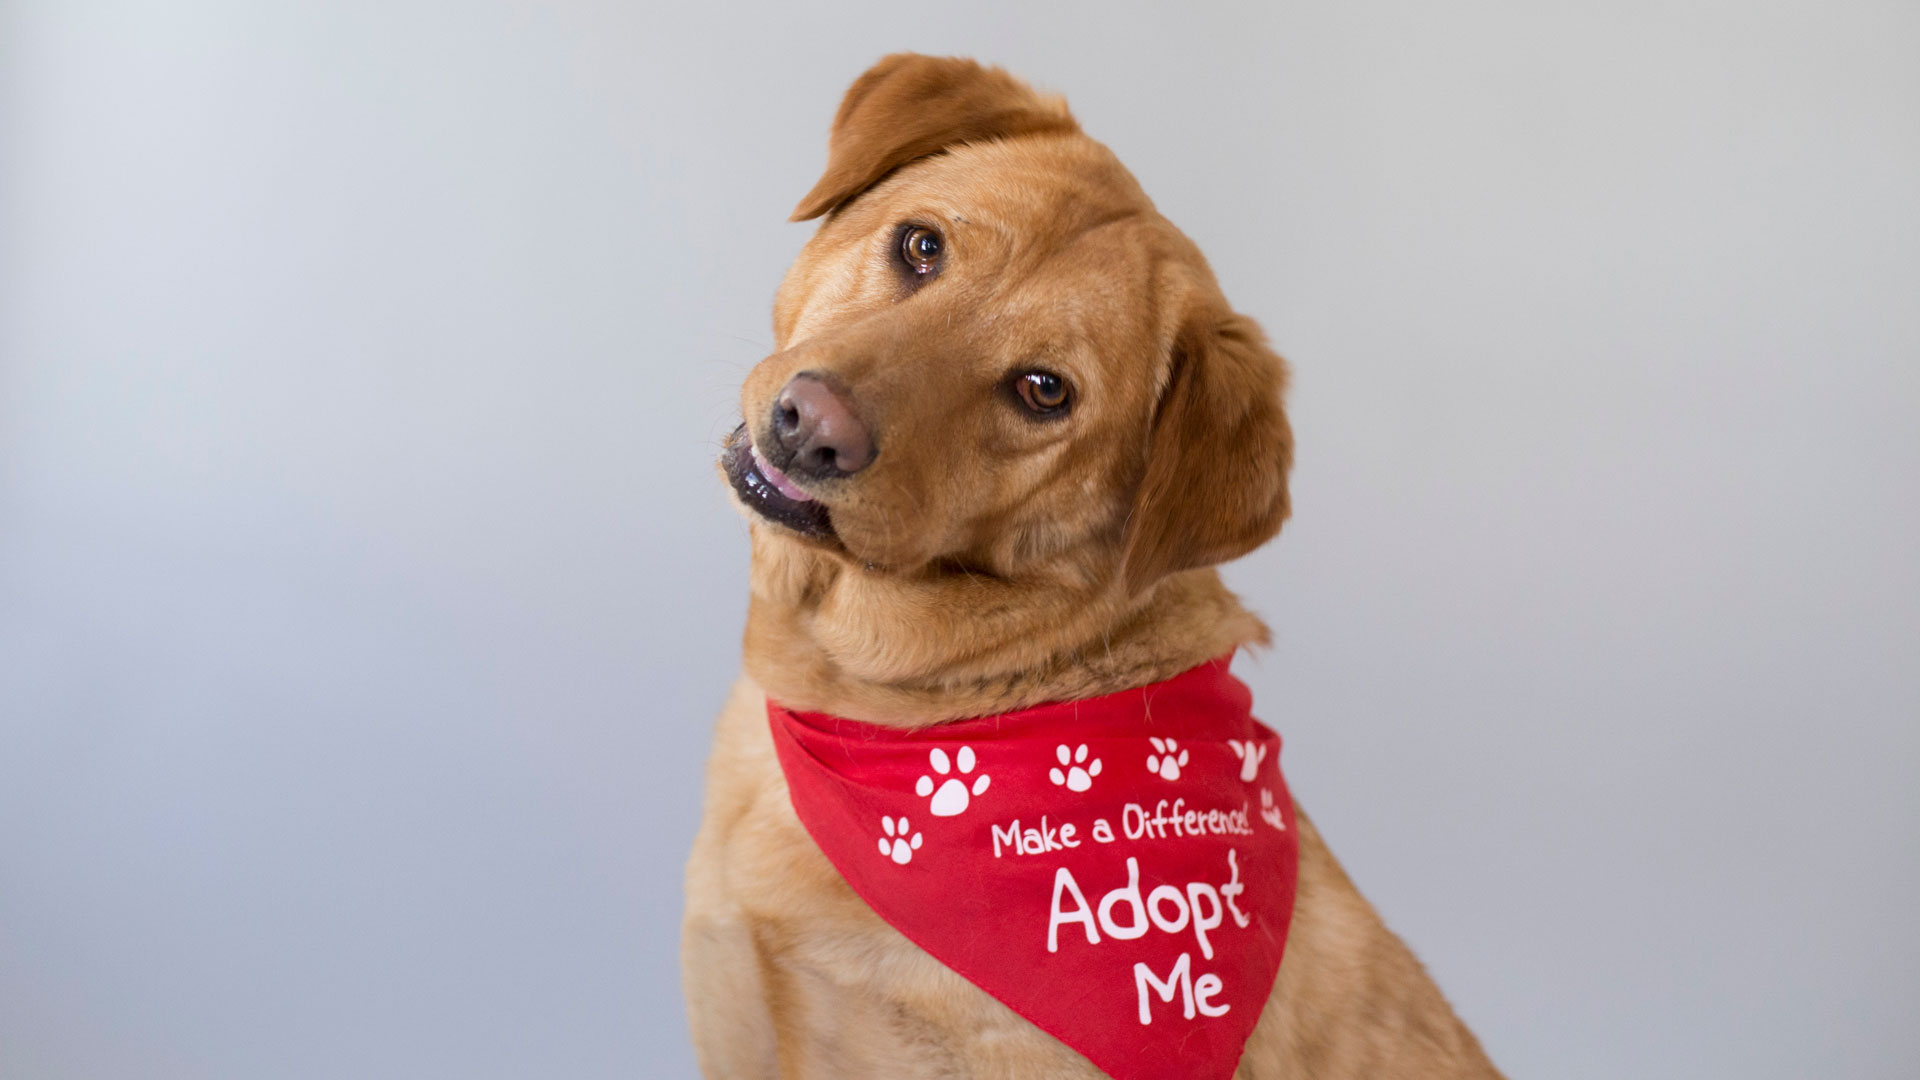 Mocha/golden w red adopt me bandana 4